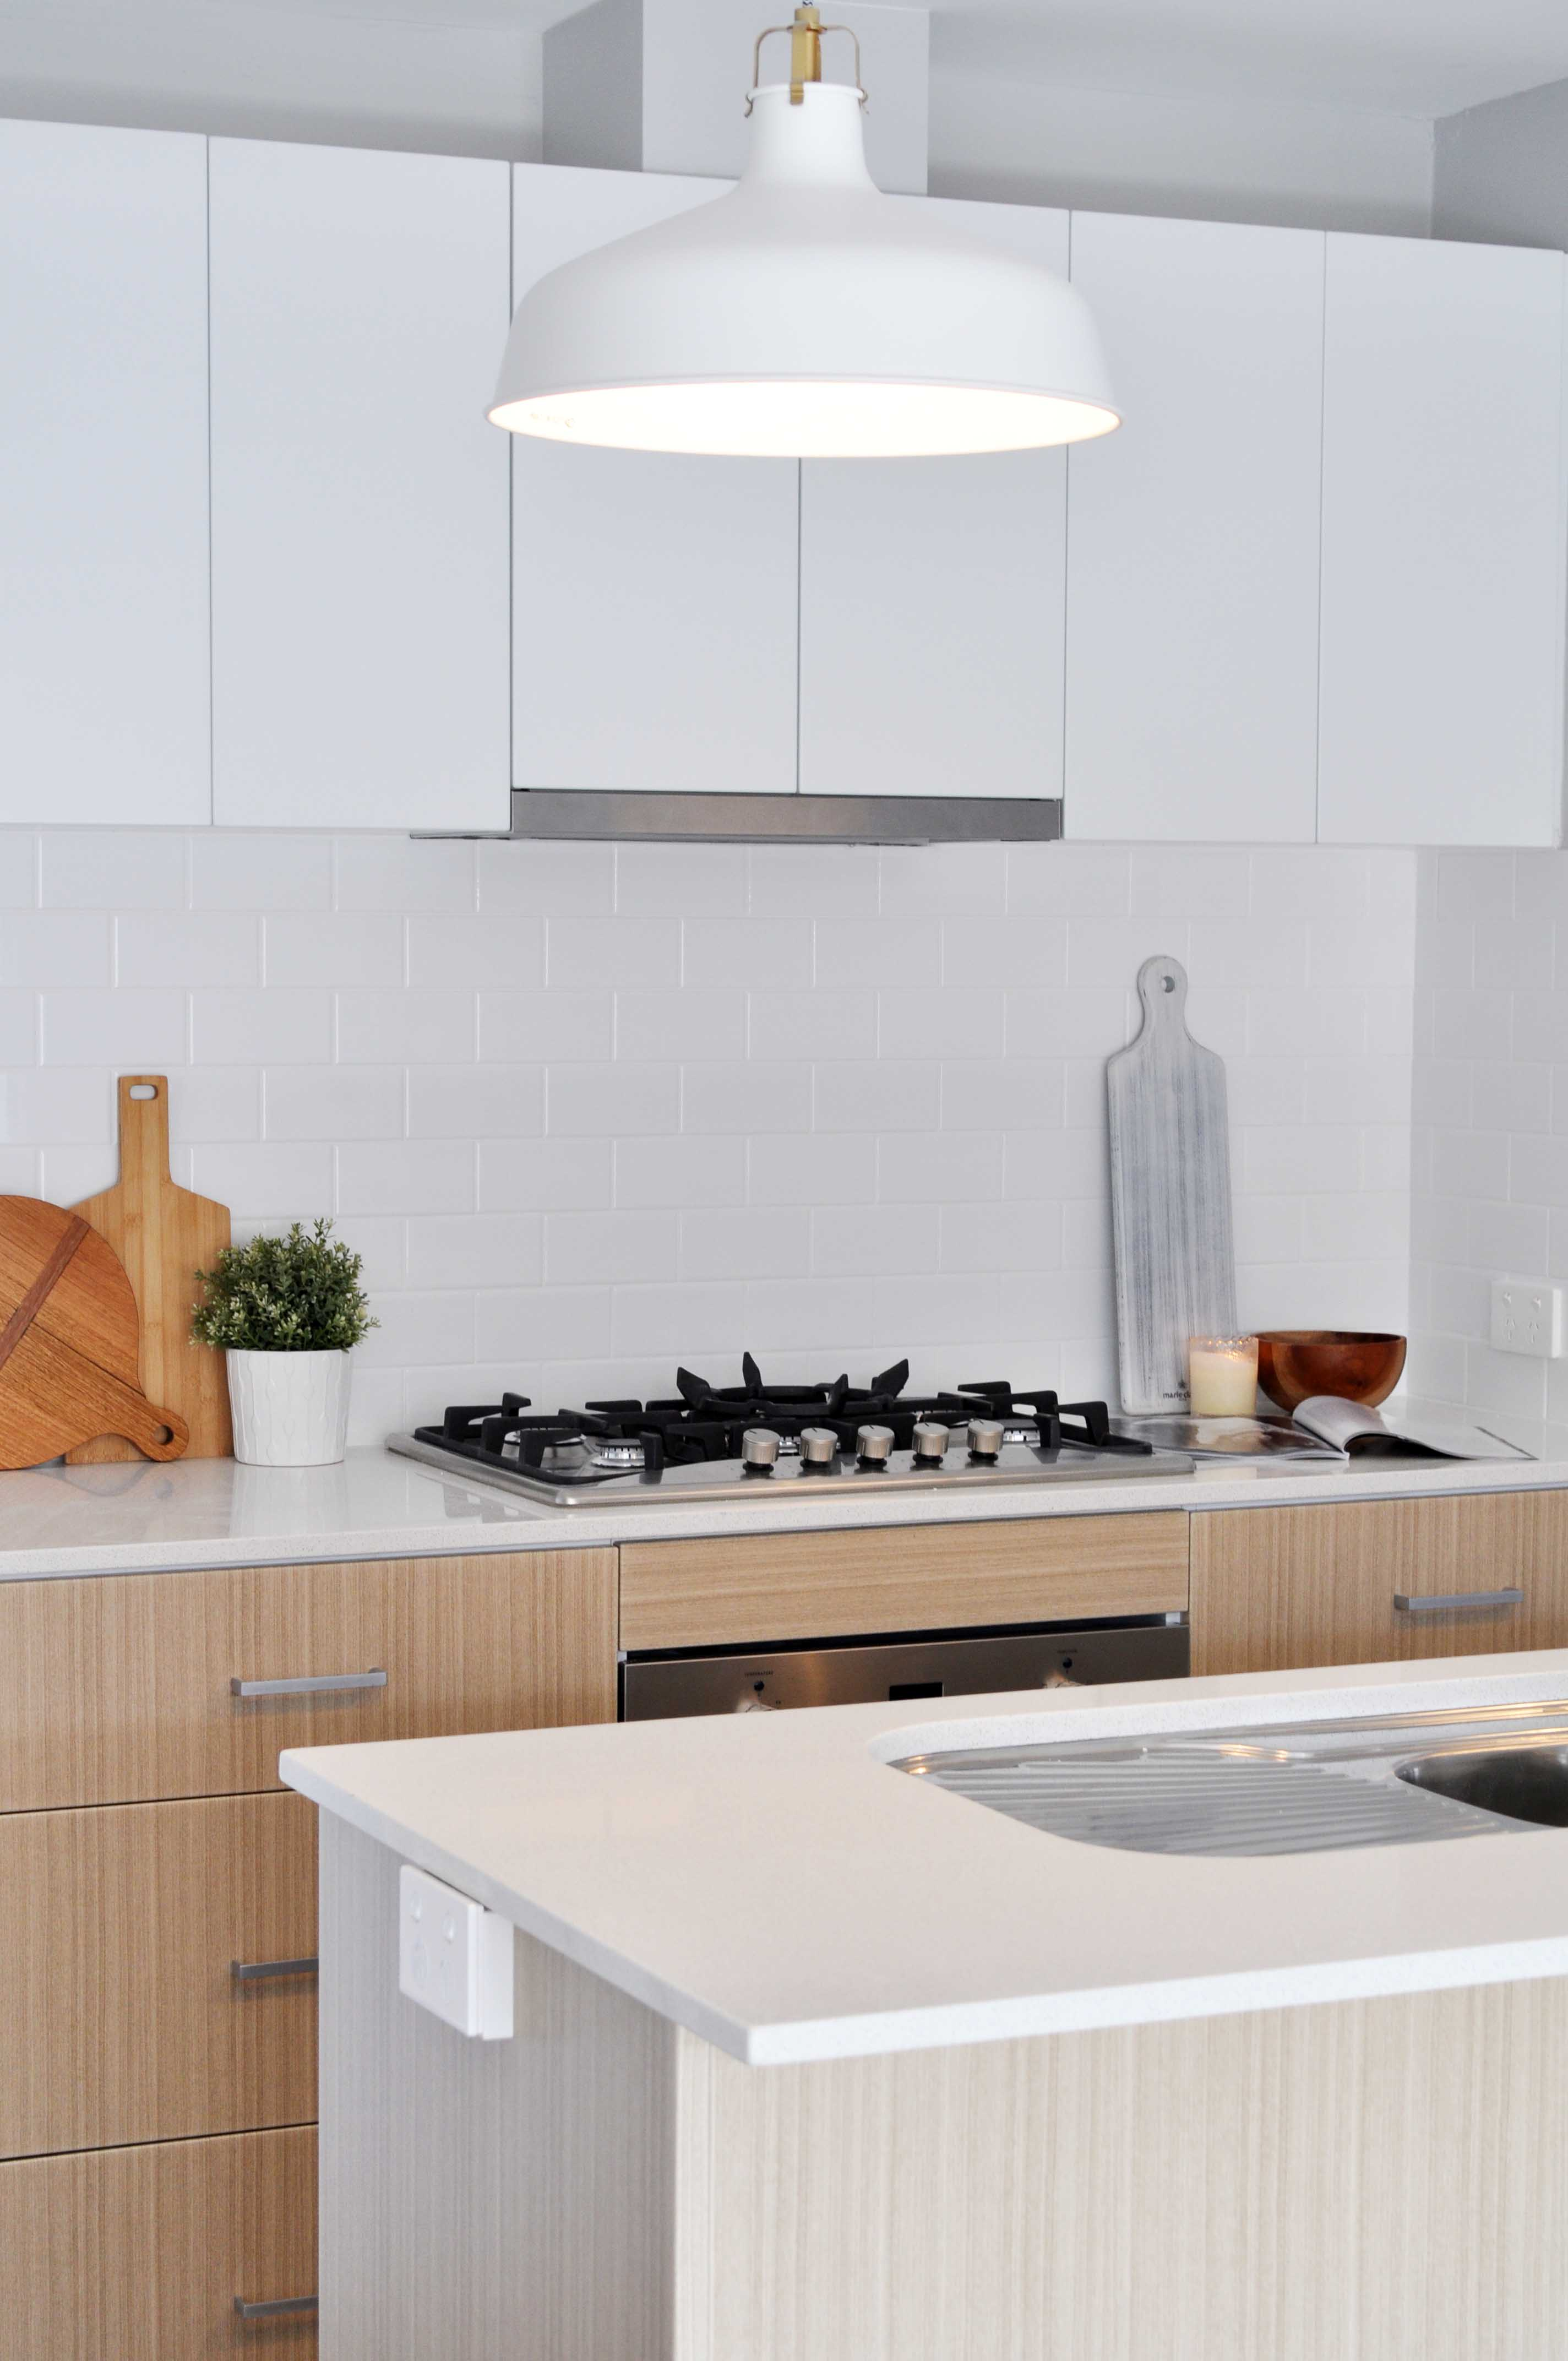 180A Ravenscar St_Images_Kitchen detail 2